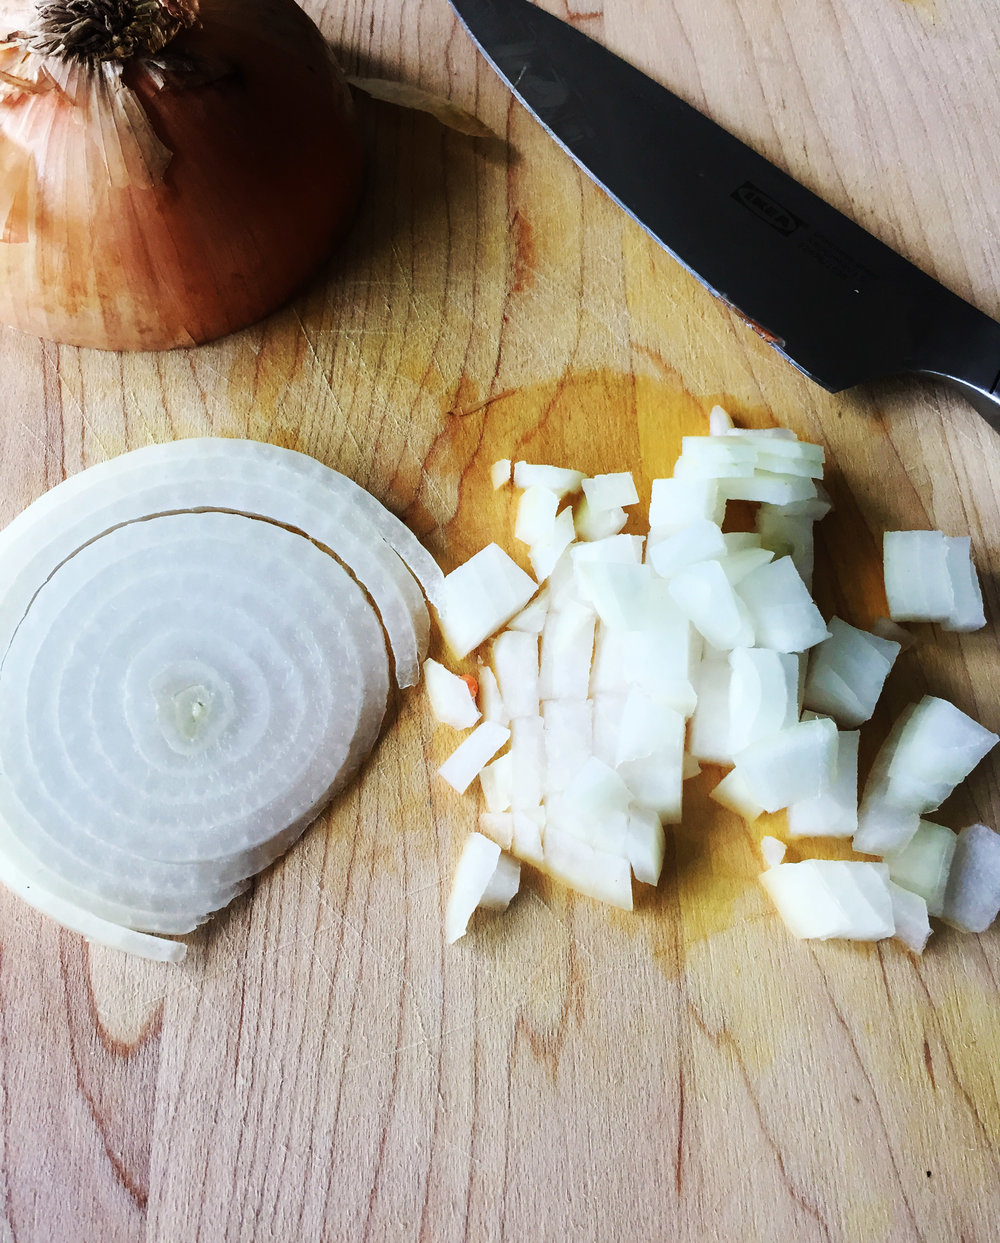 1. Dice your onions into bite size chunks.